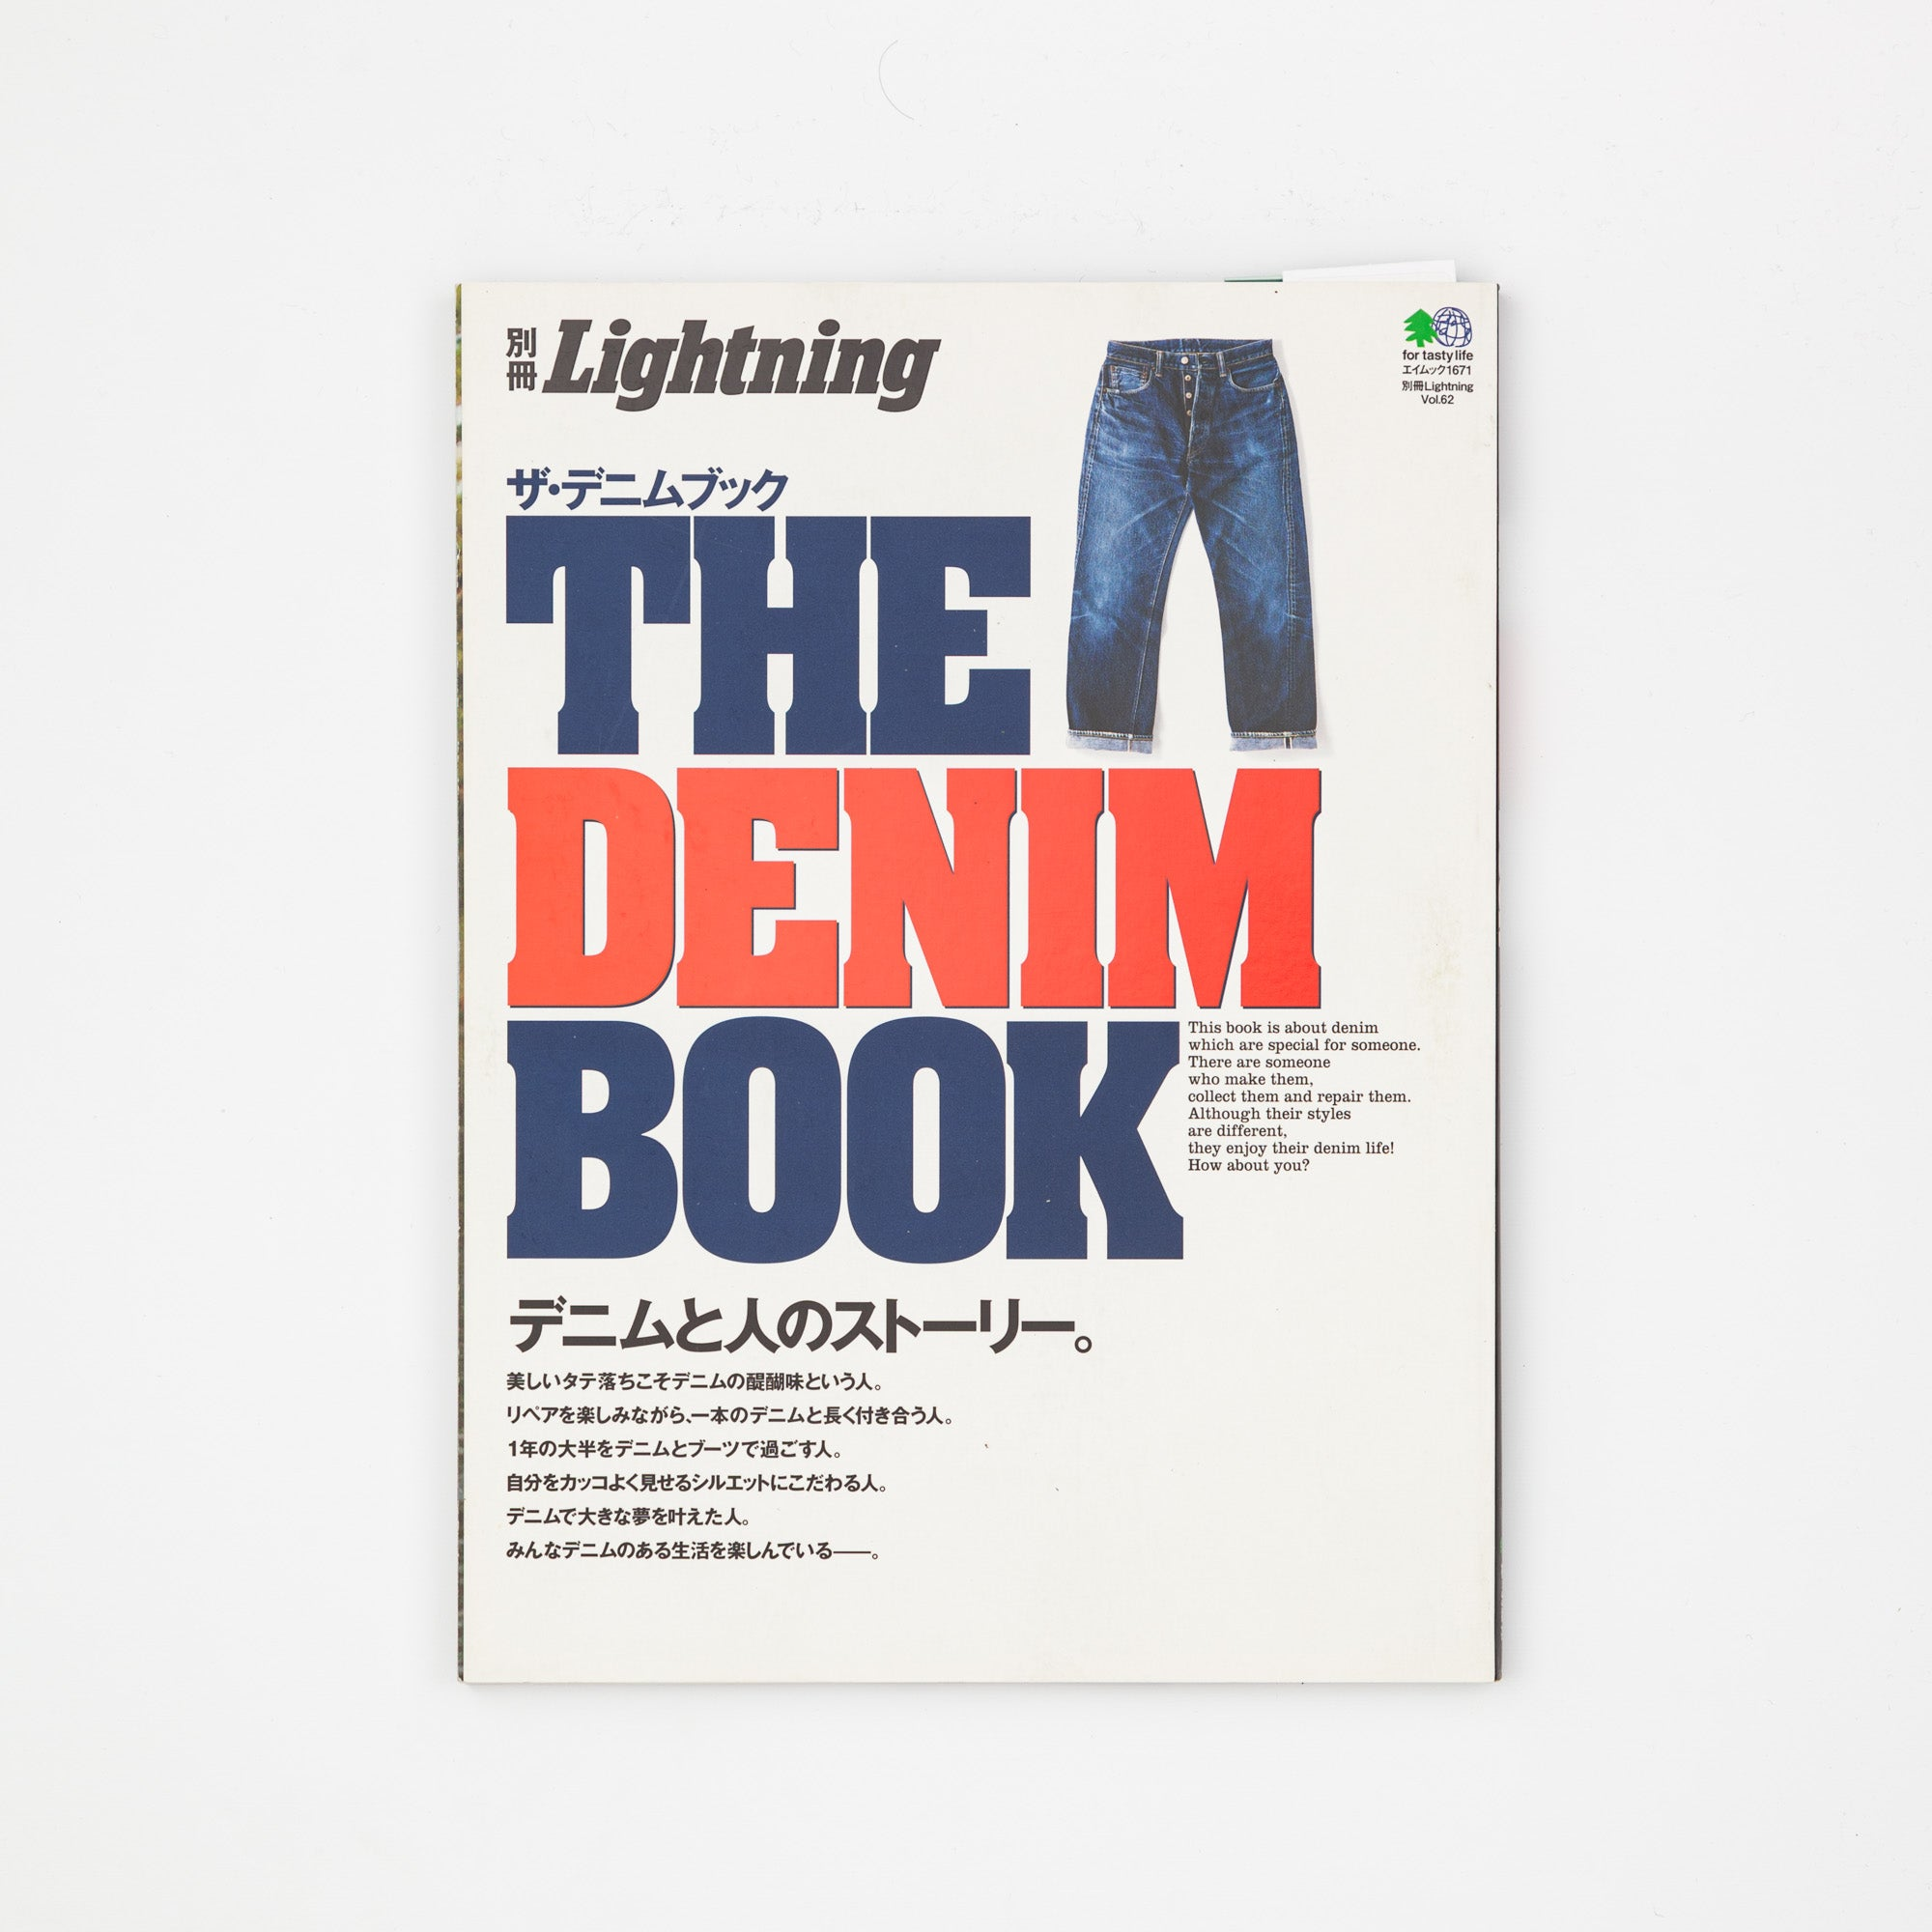 The Denim Book